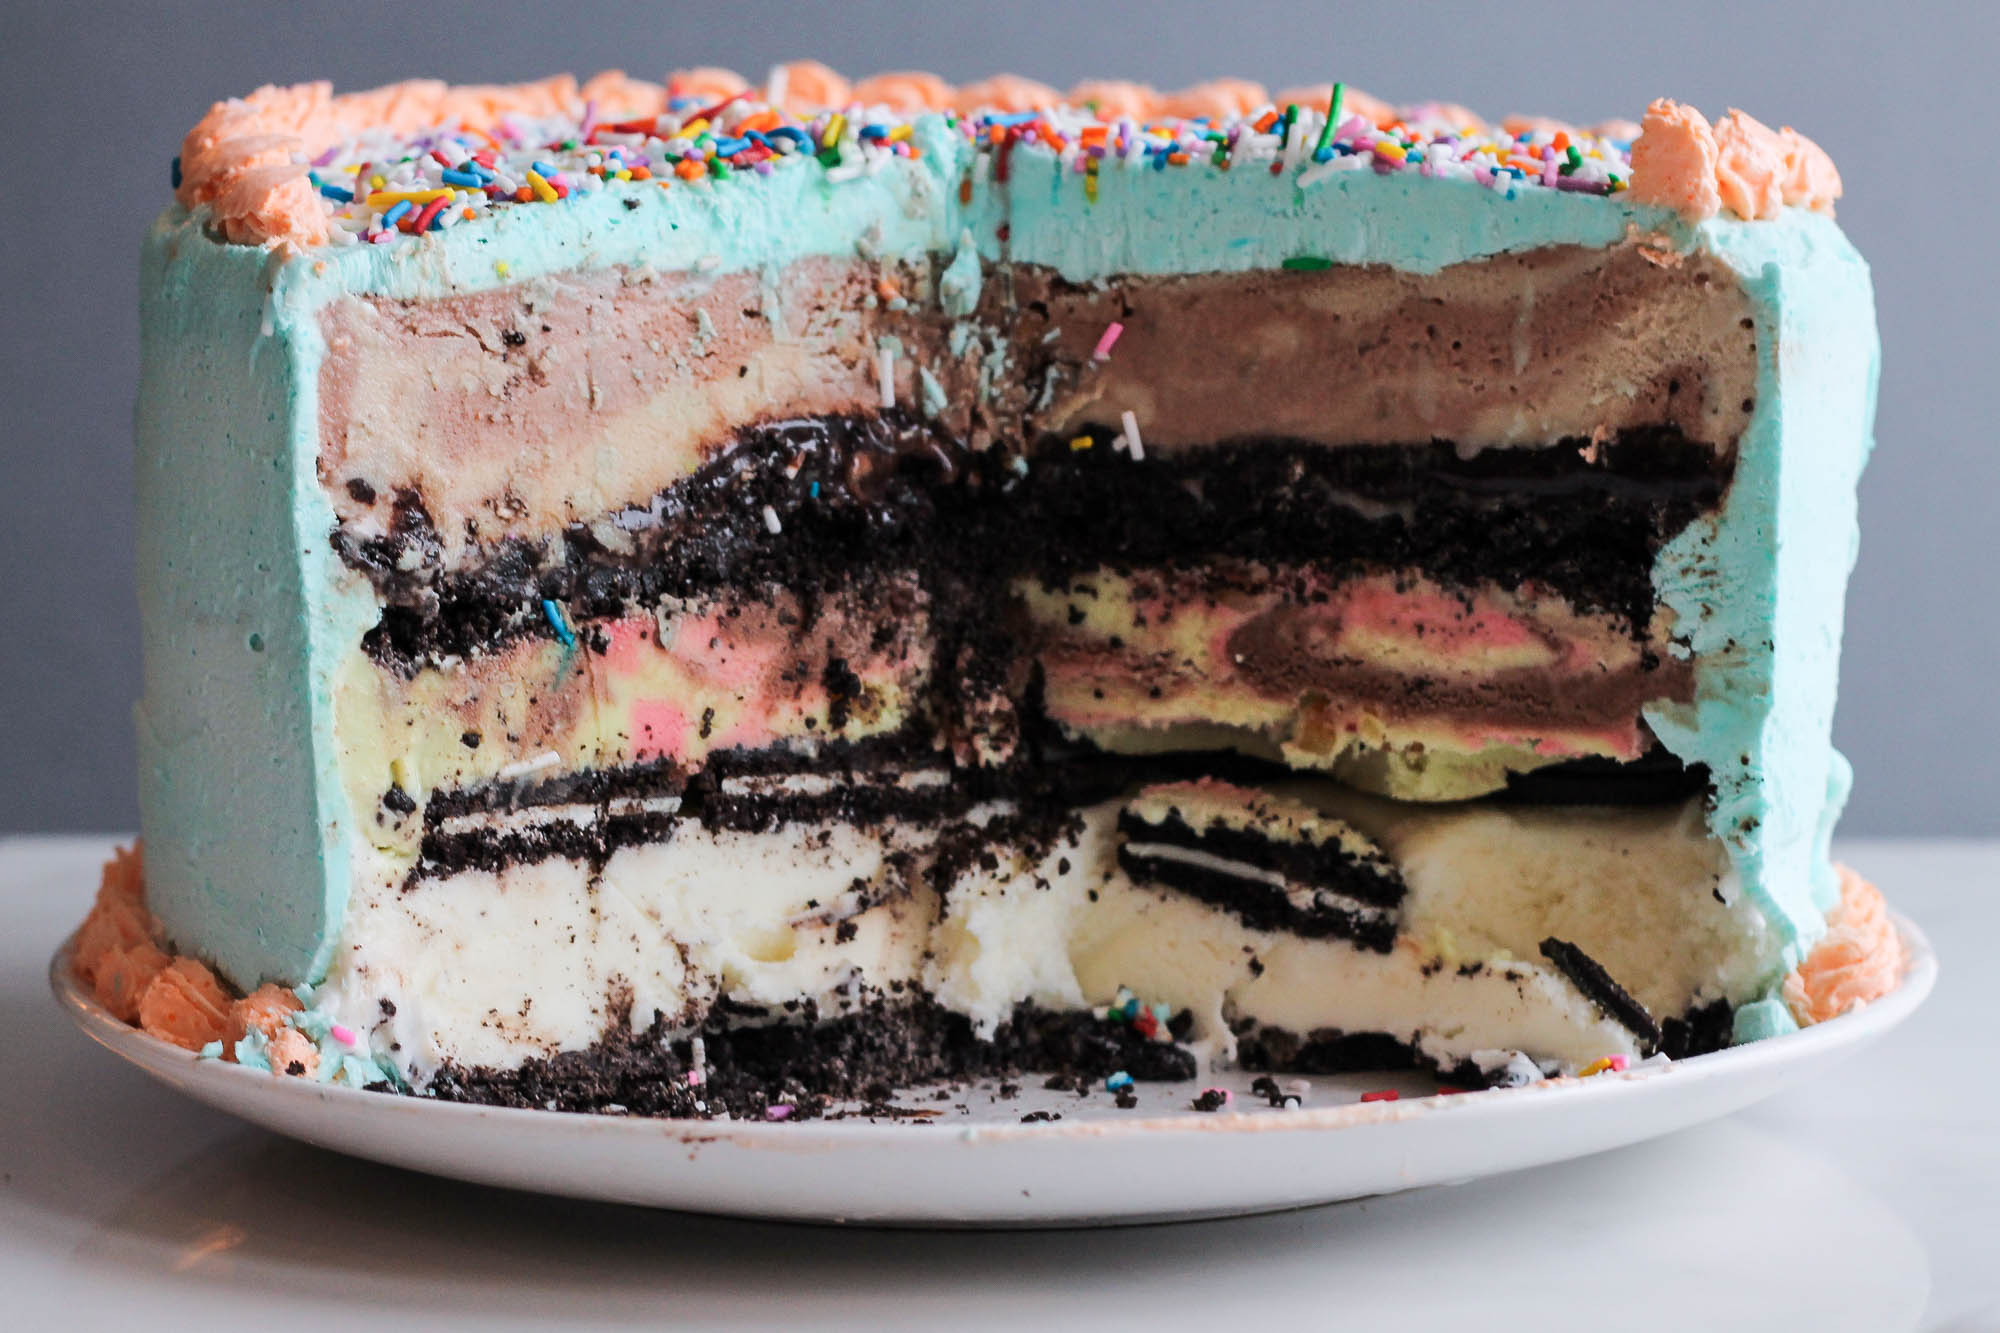 3 Layer Ice Cream Cake || A Dairy Queen inspired homemade ice cream cake recipe for all your birthday needs! This party dessert is loaded with three ice creams (chocolate hazelnut, vanilla + spumoni) with crunchy oreo + fudge layers. Topped with a whipped cream frosting. || creamandhoney.ca